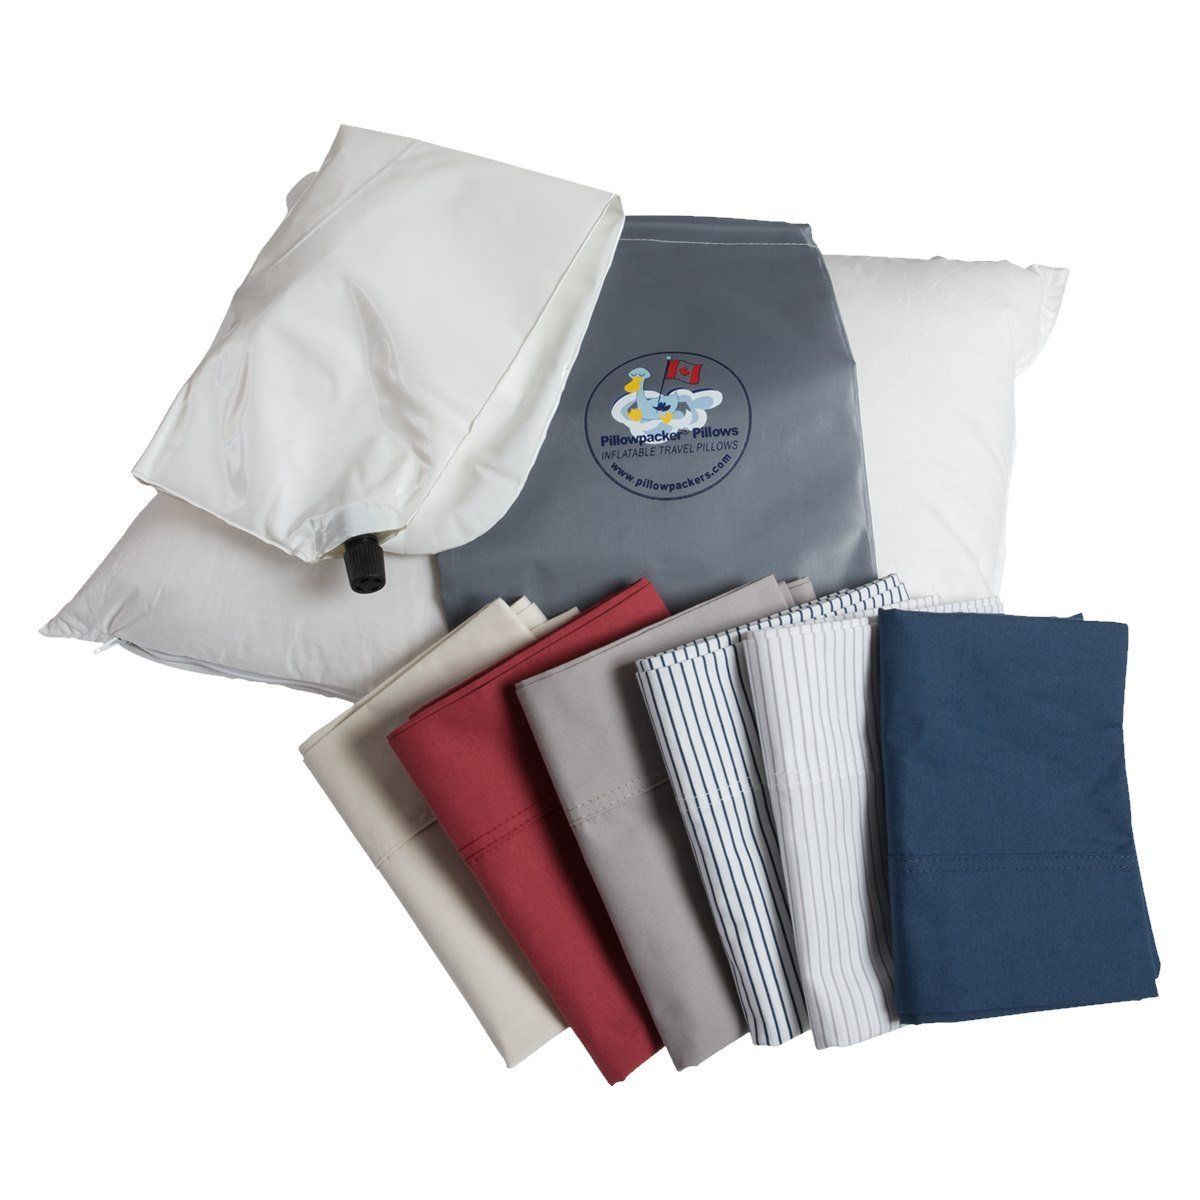 A Pillowpacker Hutterite goose down pillow with its inflatable inner core, pillowcase, and carrying cases